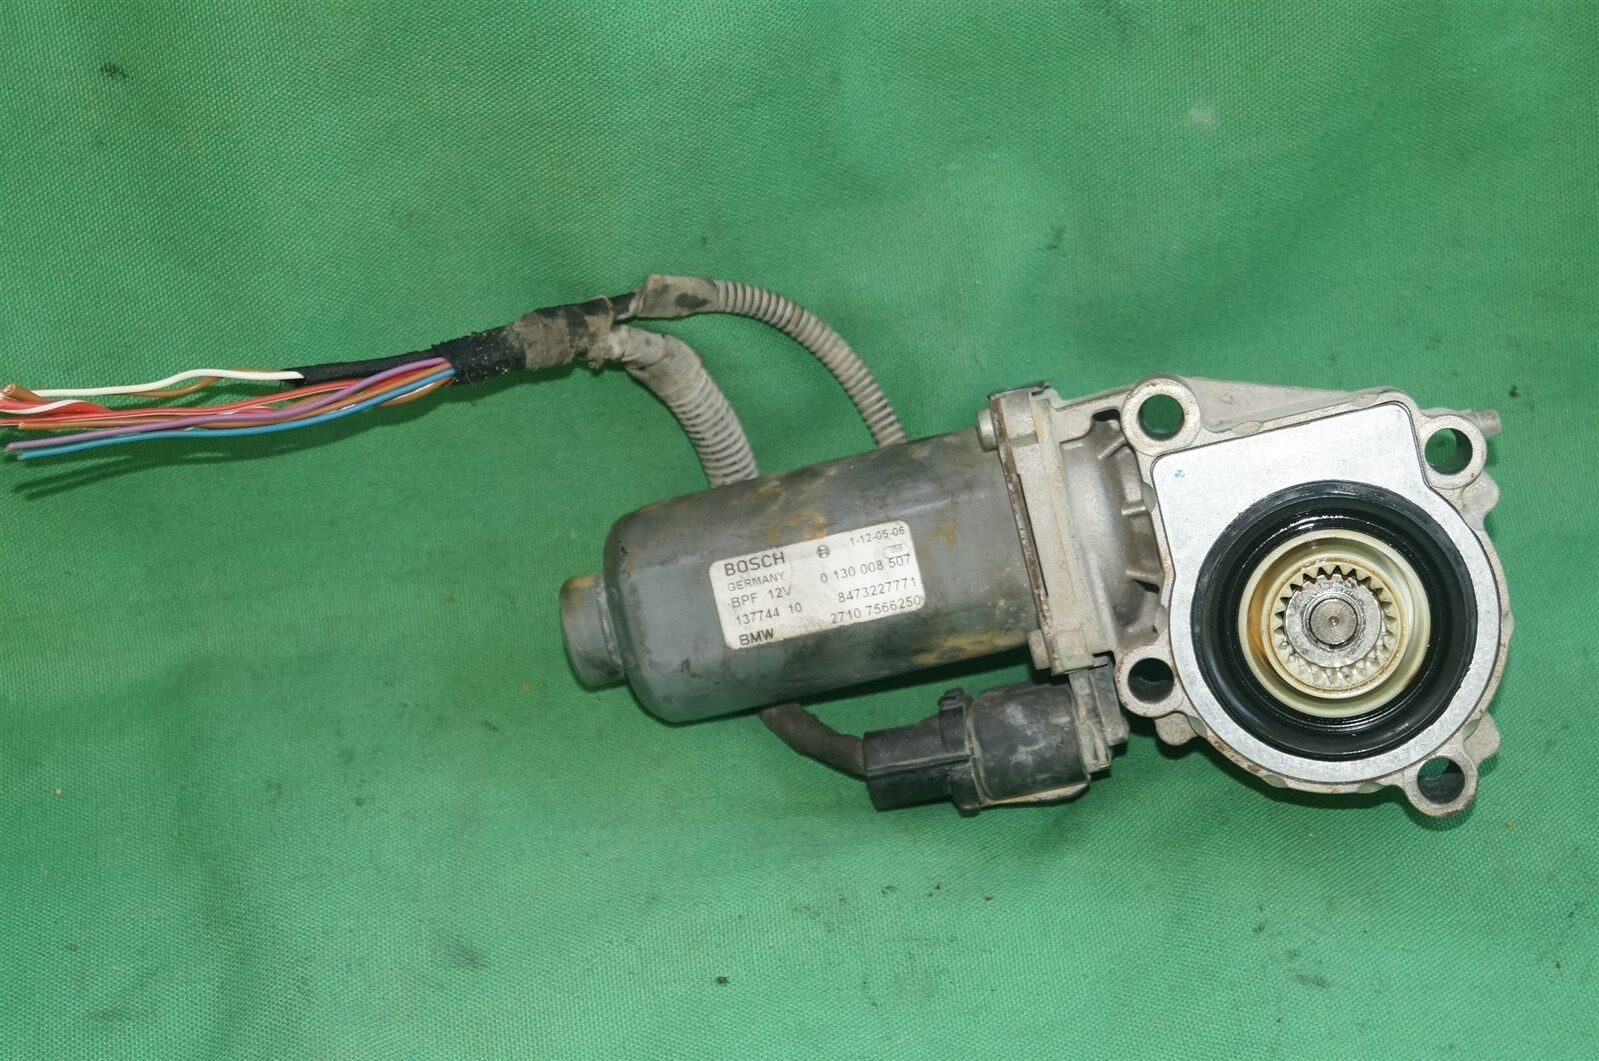 04-10 BMW E83 E53 X3 X5 Transfer Case 4WD 4x4 Shift Actuator Motor 0130008507